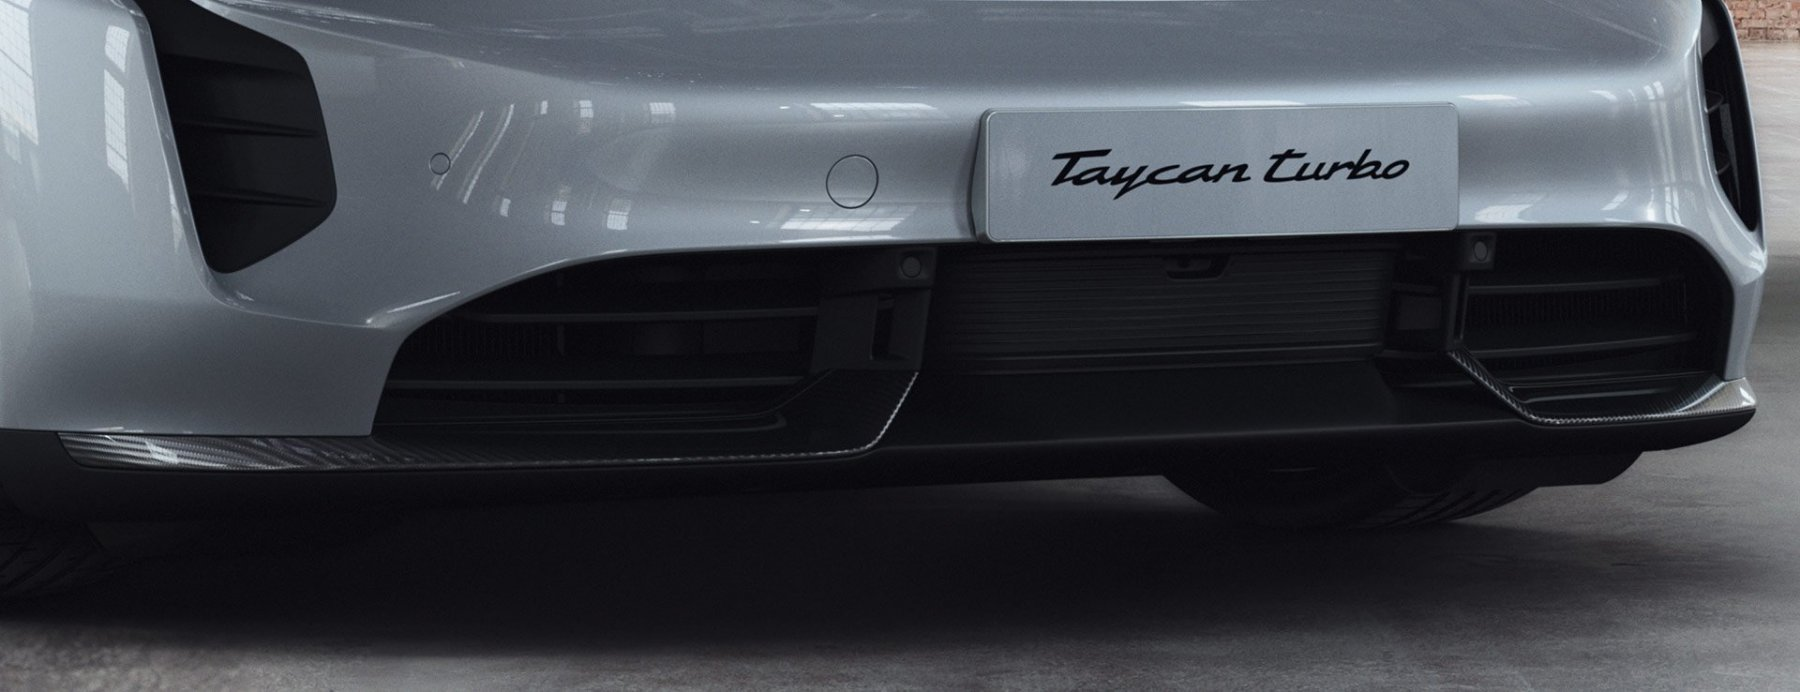 Porsche Taycan Turbo - Porsche Exclusive